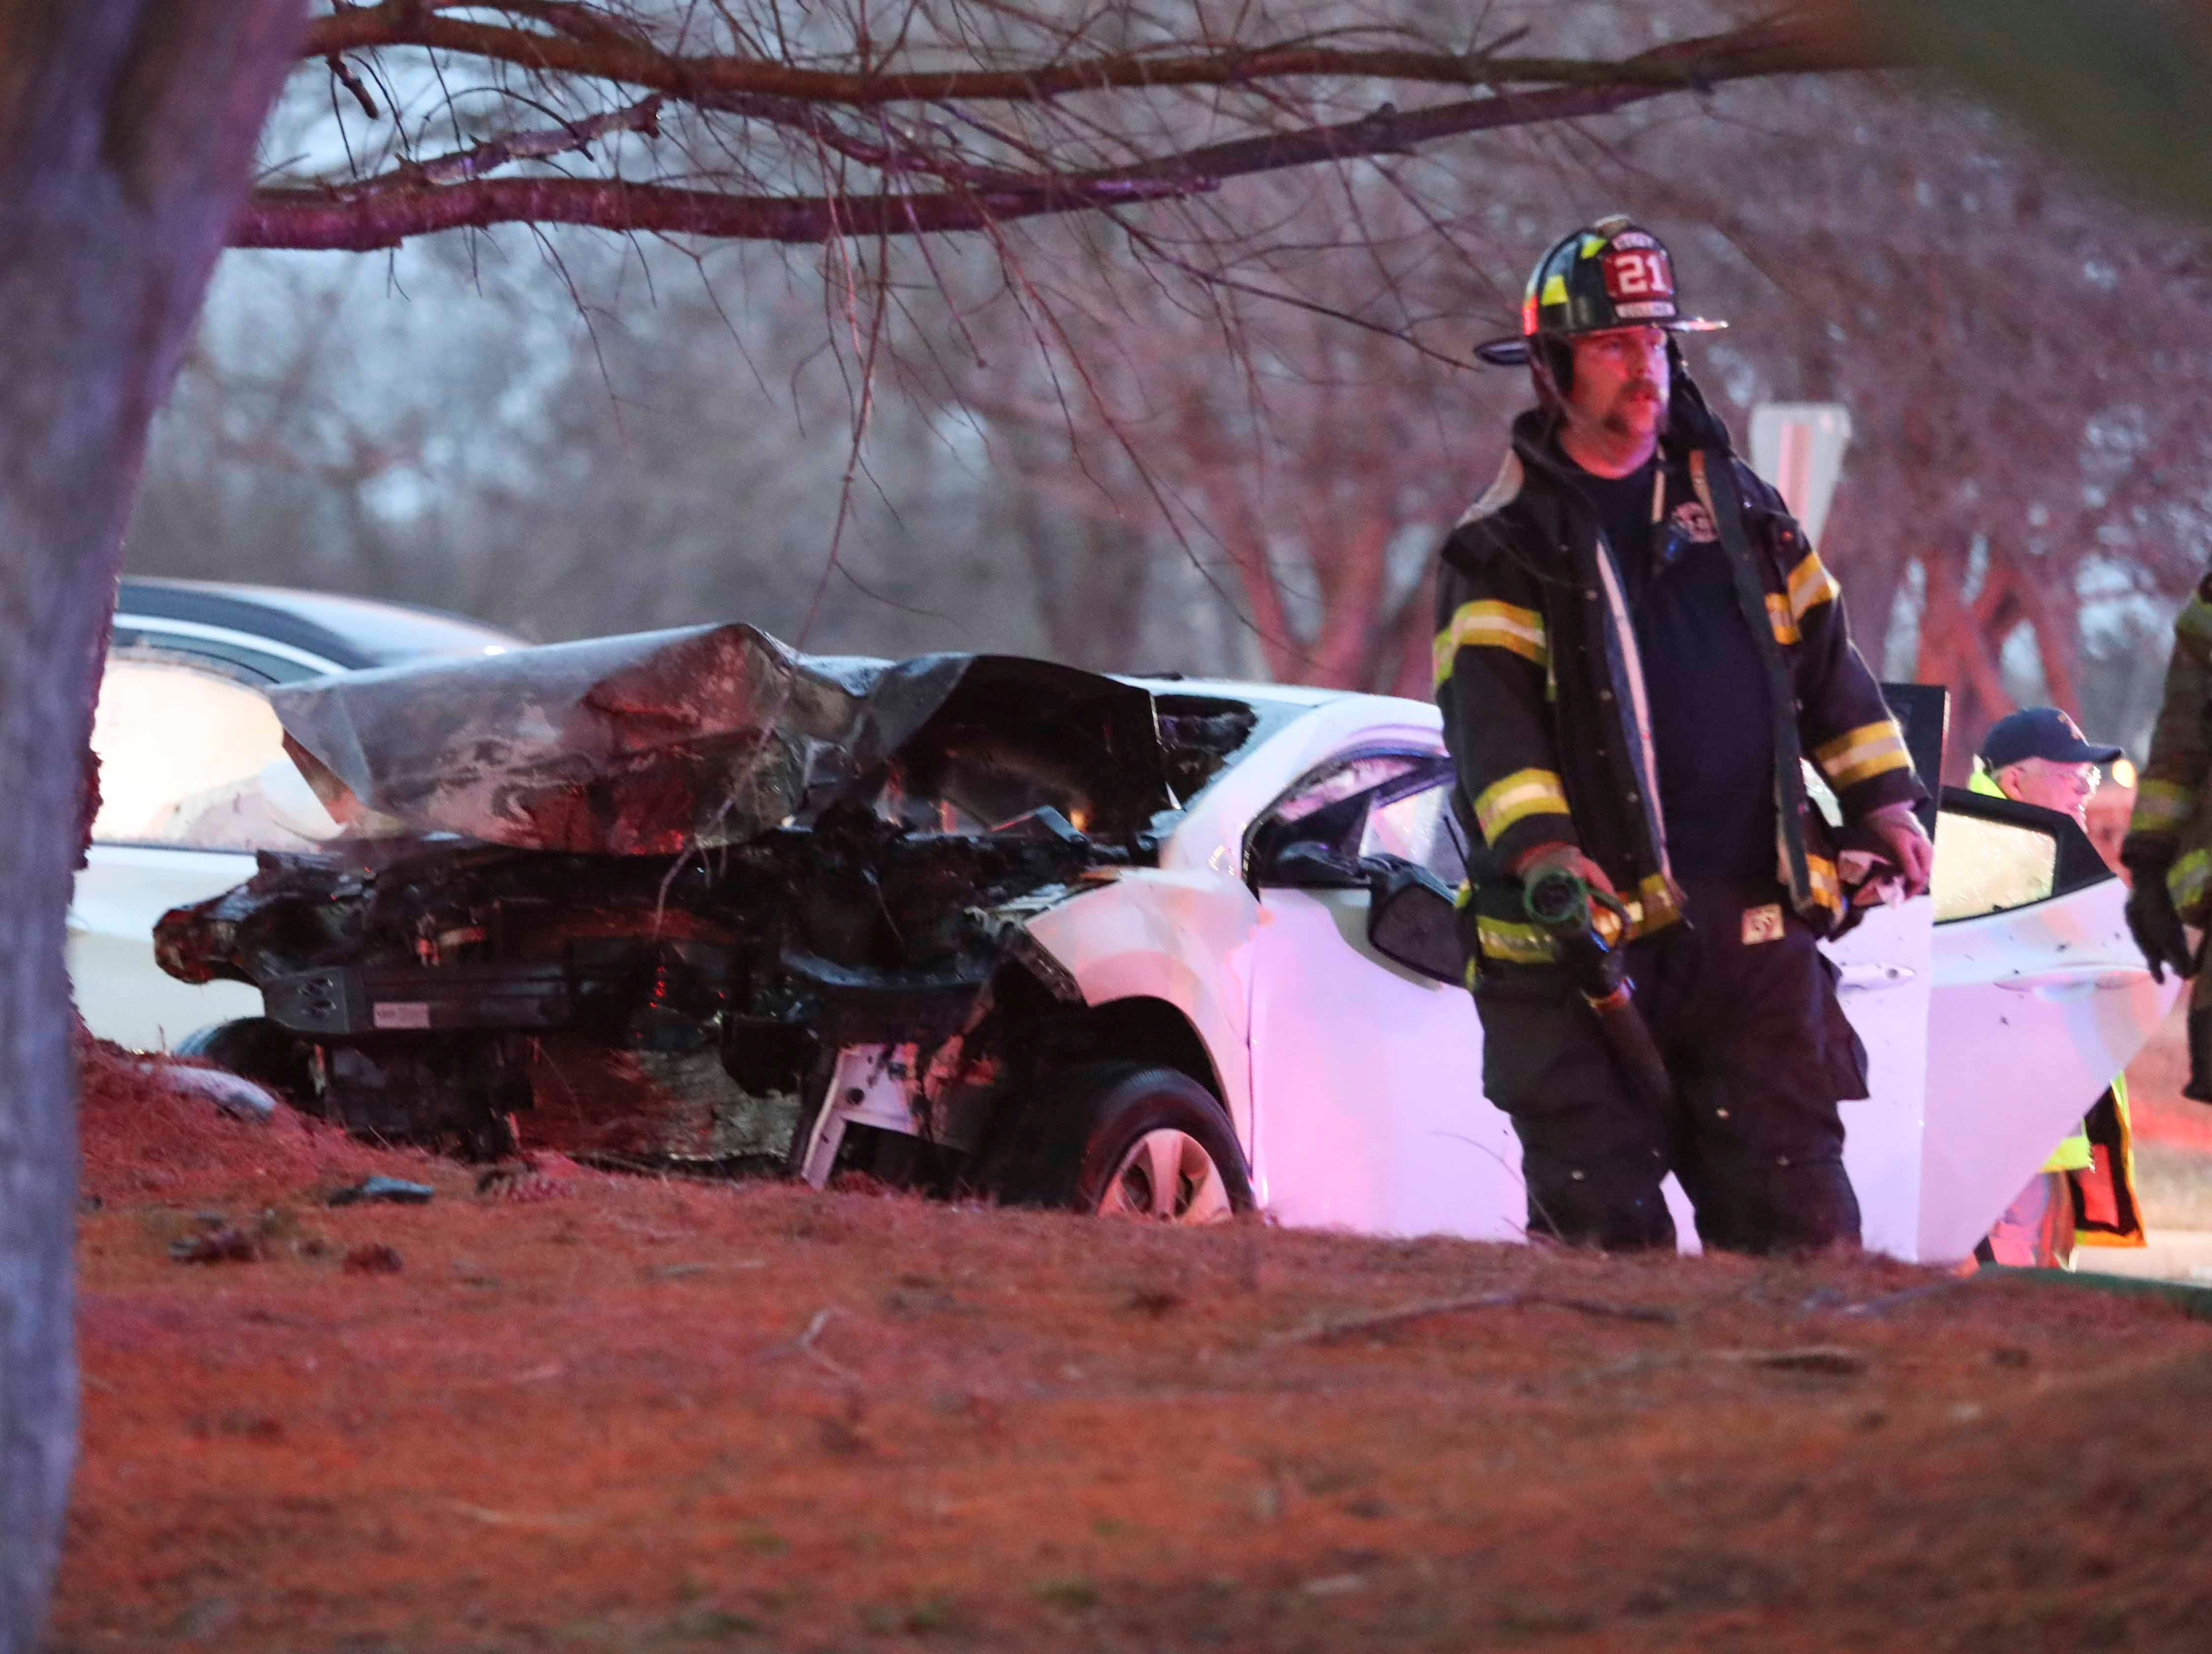 Firefighters work after extinguishing a fire in a car involved in an accident on Kirkwood Highway in Milltown early Thursday evening. Bystanders said the driver was rescued from the car as the fire started to break out and was transported to an area hospital with serious injuries.